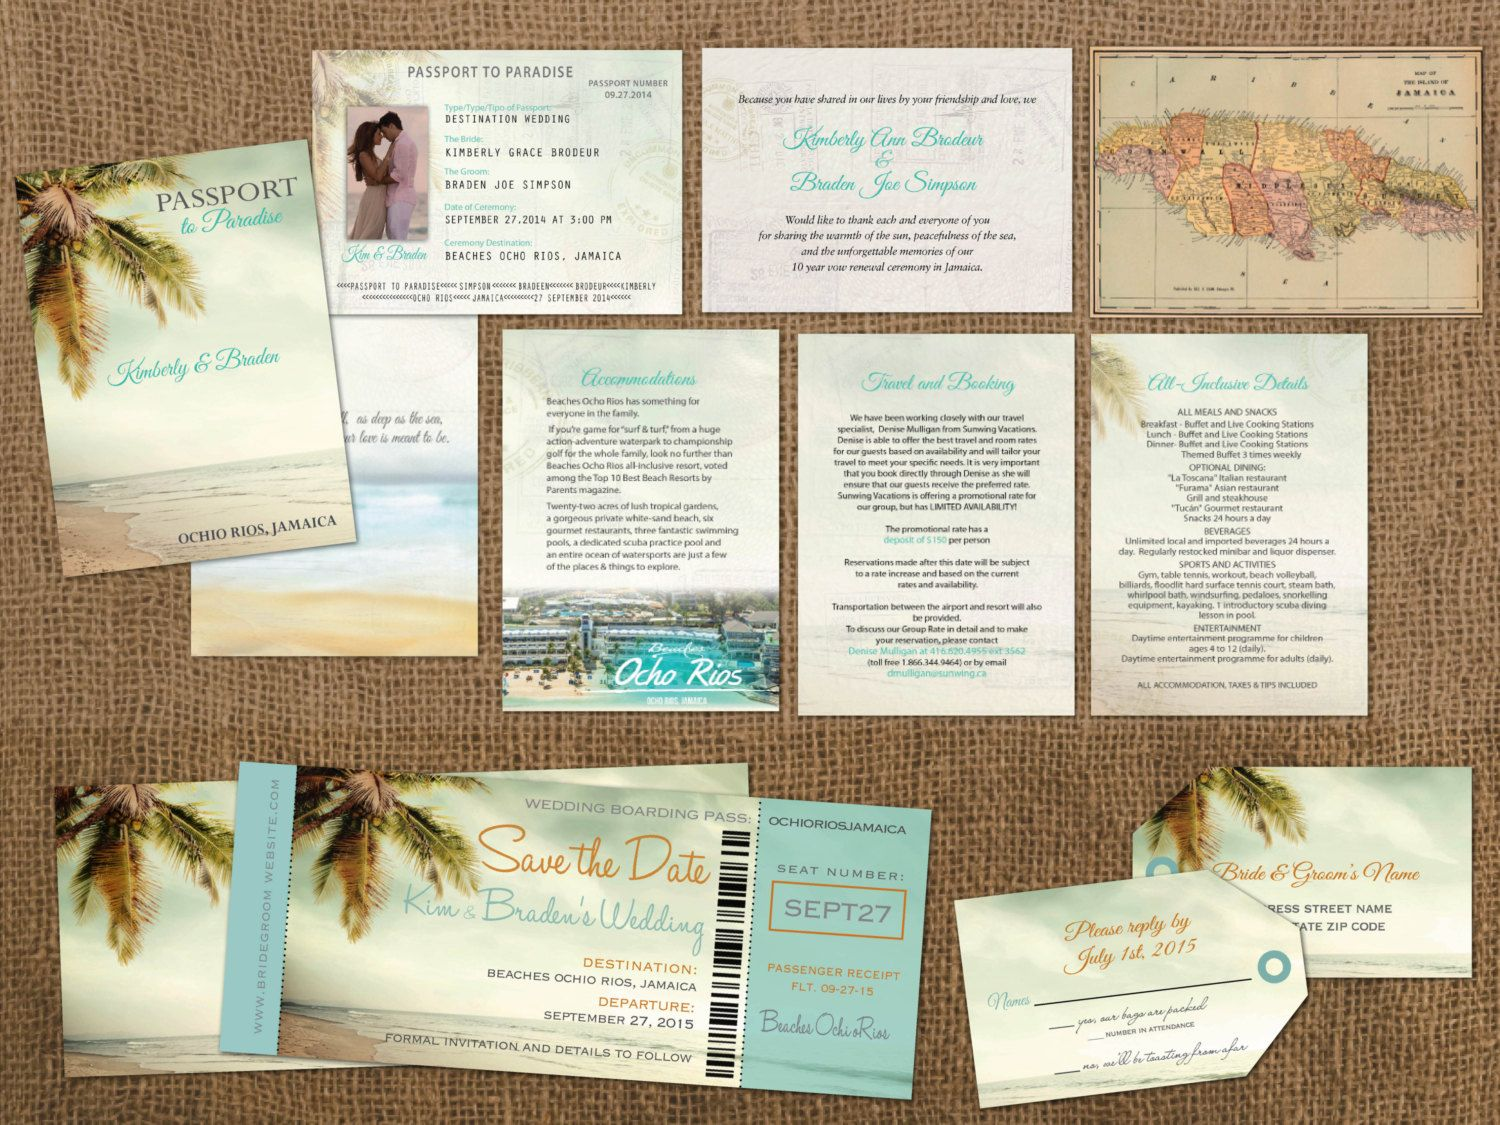 cruise wedding save the date announcement%0A Vintage Passports Boarding Pass Palm Tree Destination Set  Wedding Passport  Invitations  Save the Date Boarding Passes  Luggage Tag Reply